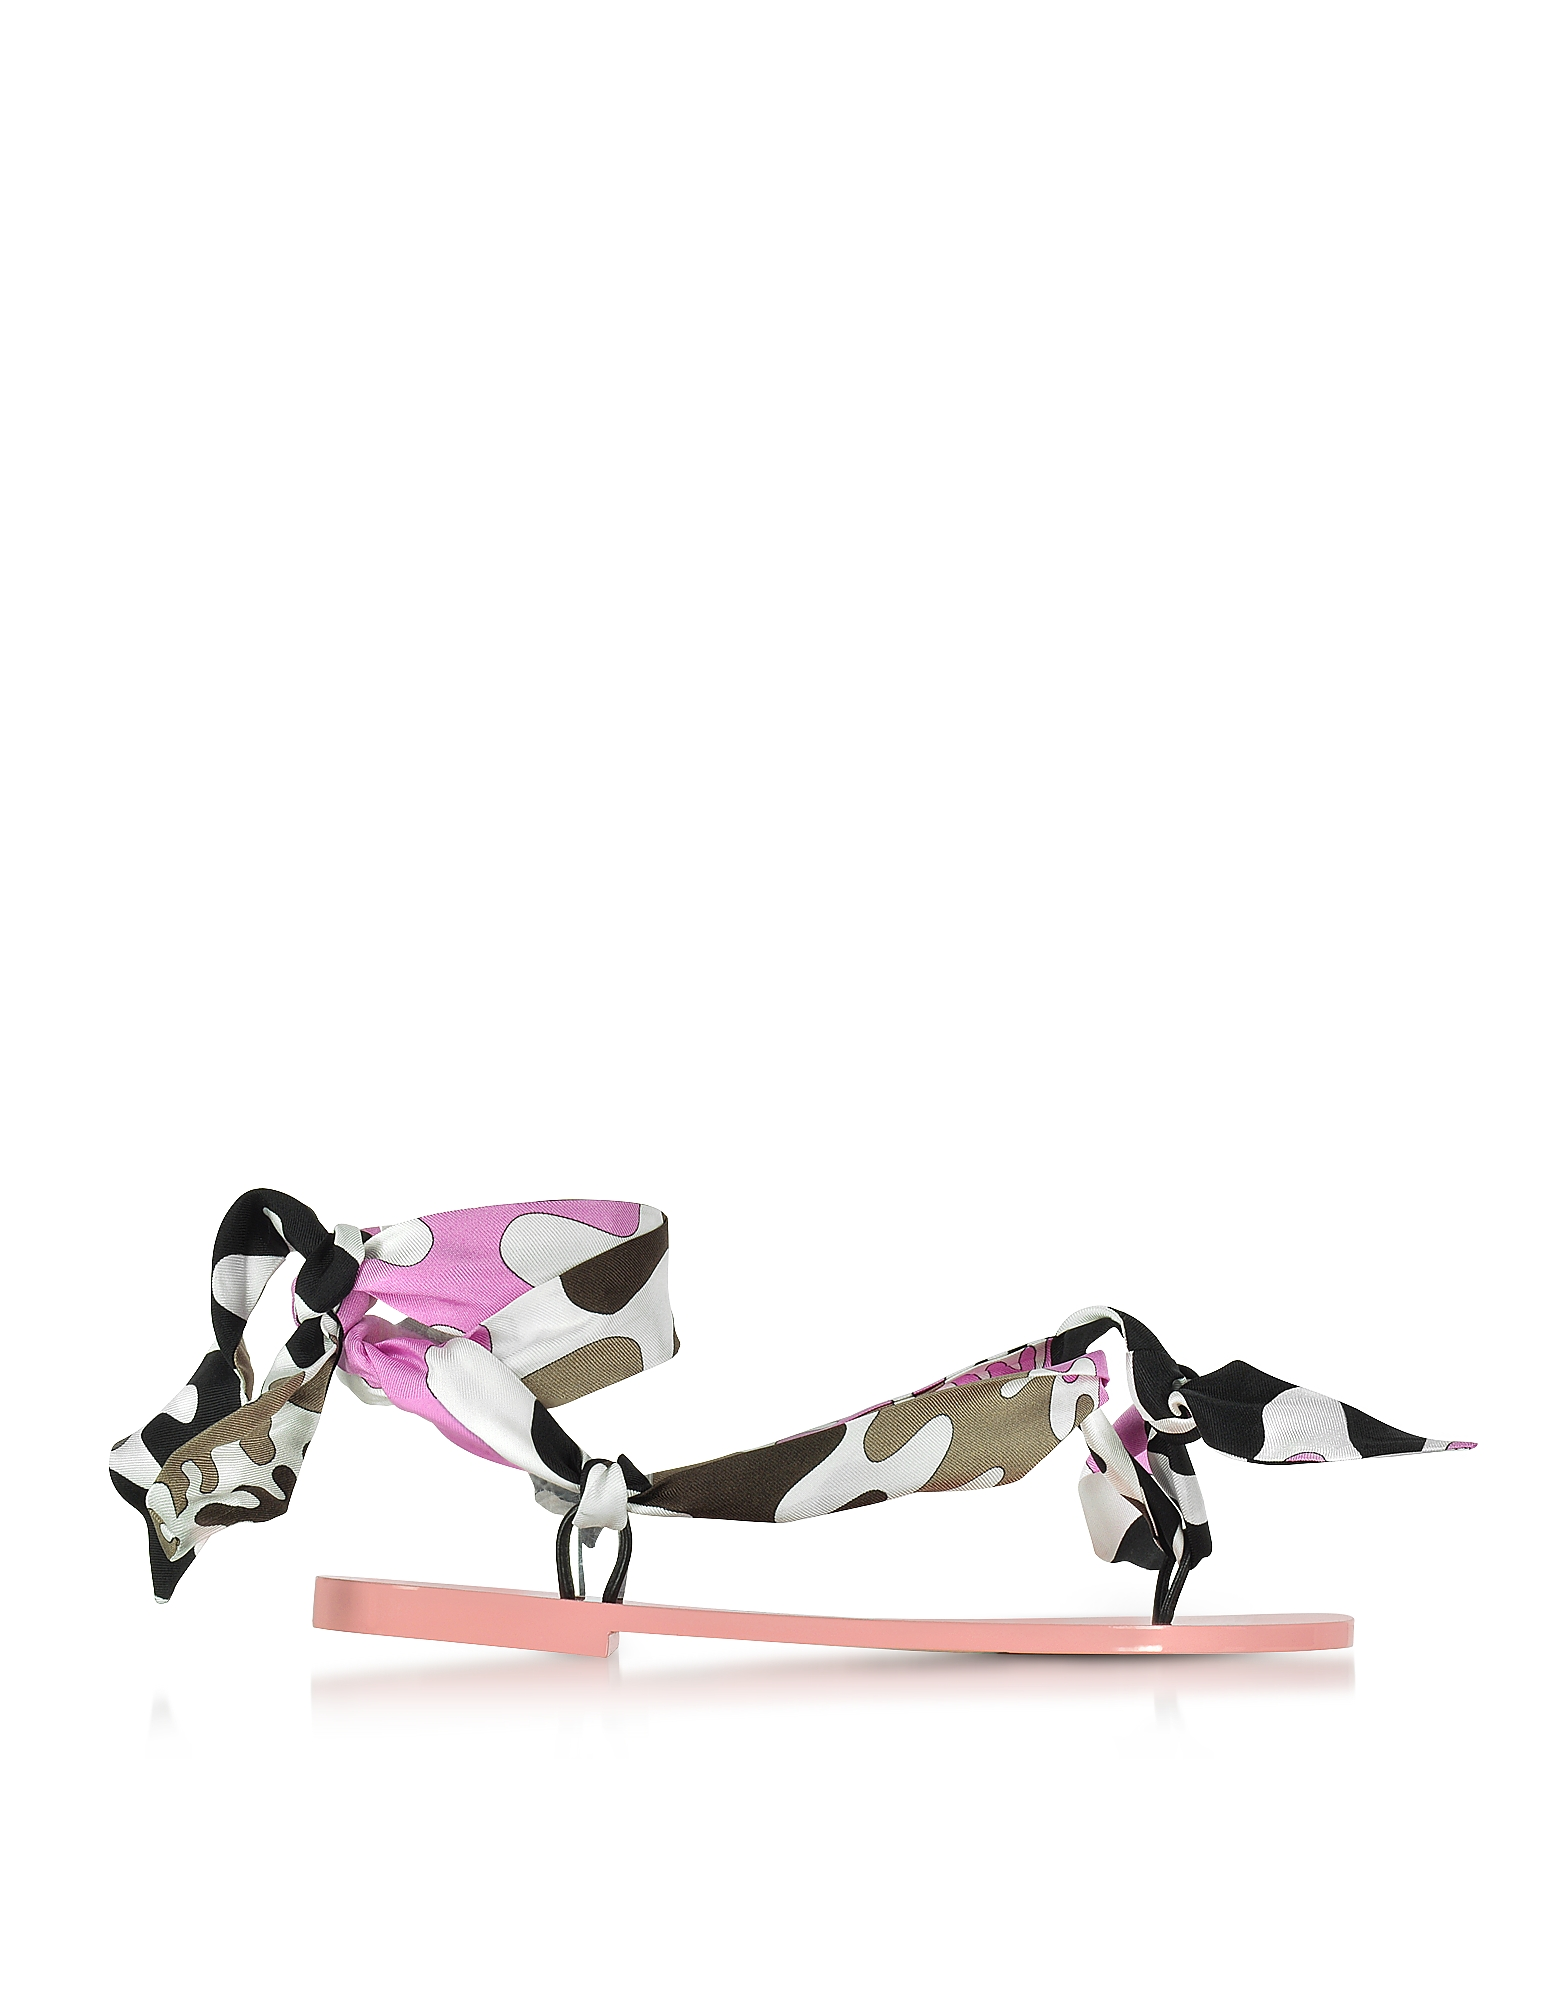 Emilio Pucci Shoes, Dark Brown and Peonia Pink Silk Flat Sandals